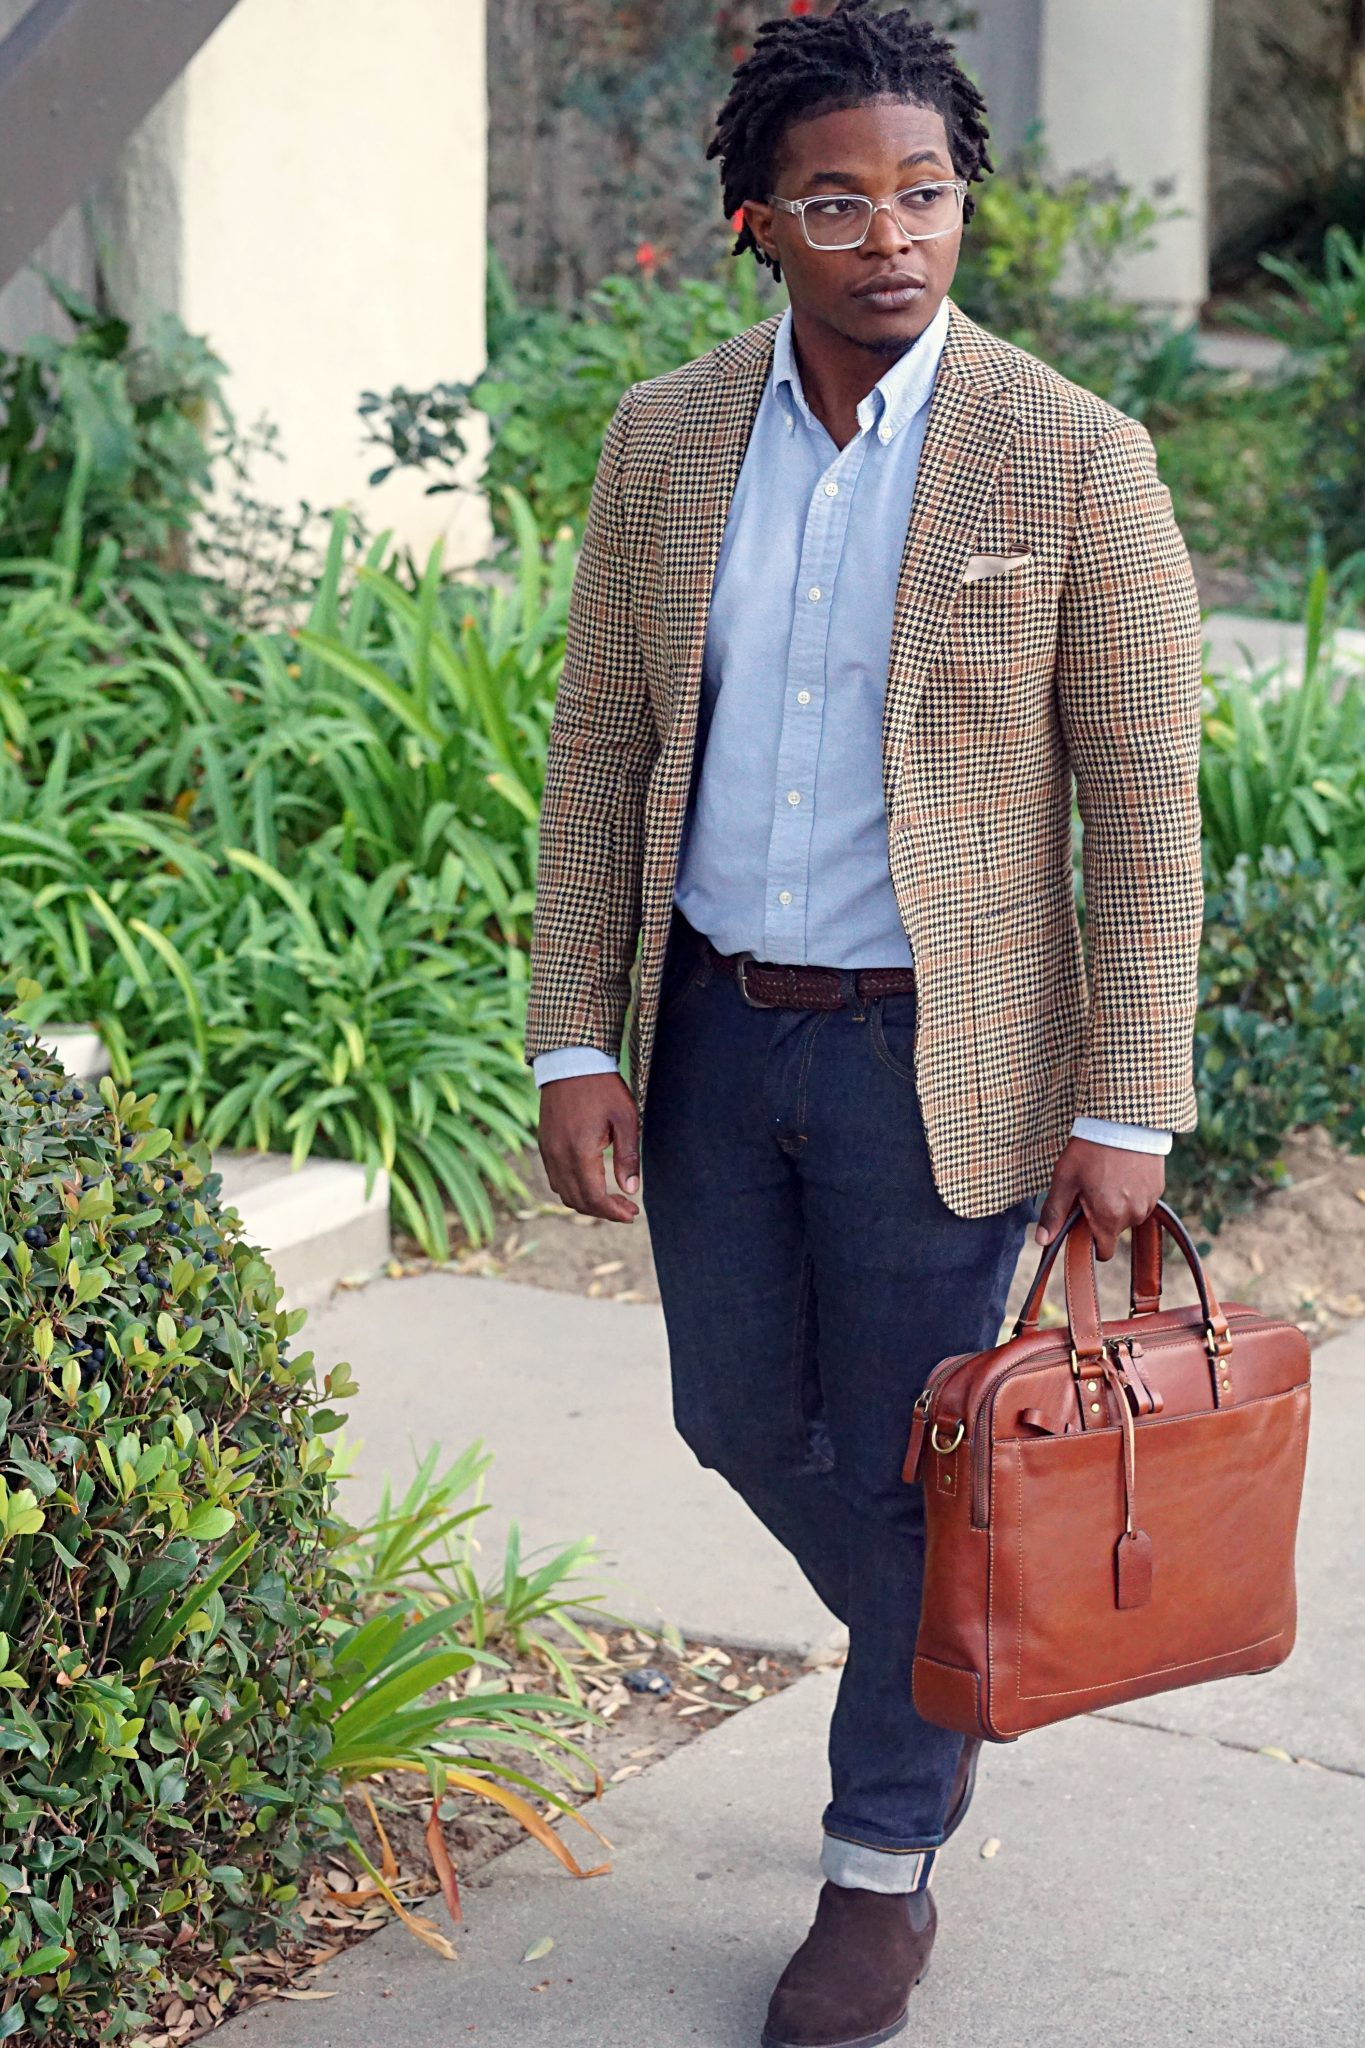 wearing-oxford-shirt-with-plaid-blazer-mens-fall-outfit-ideas-2